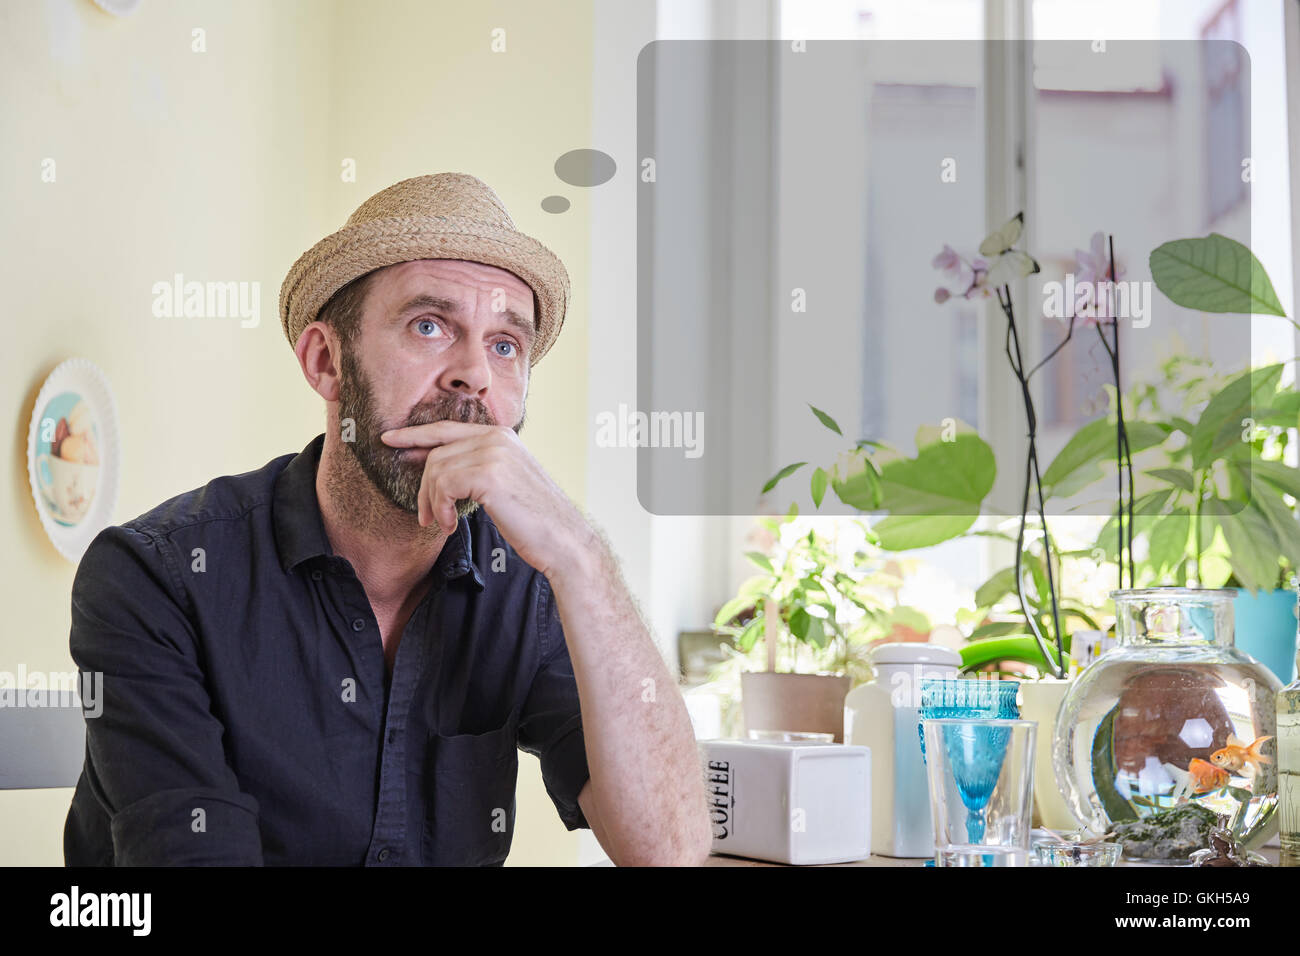 Man musing with a thought bubble over his head sitting in a kitchen indoors - Stock Image